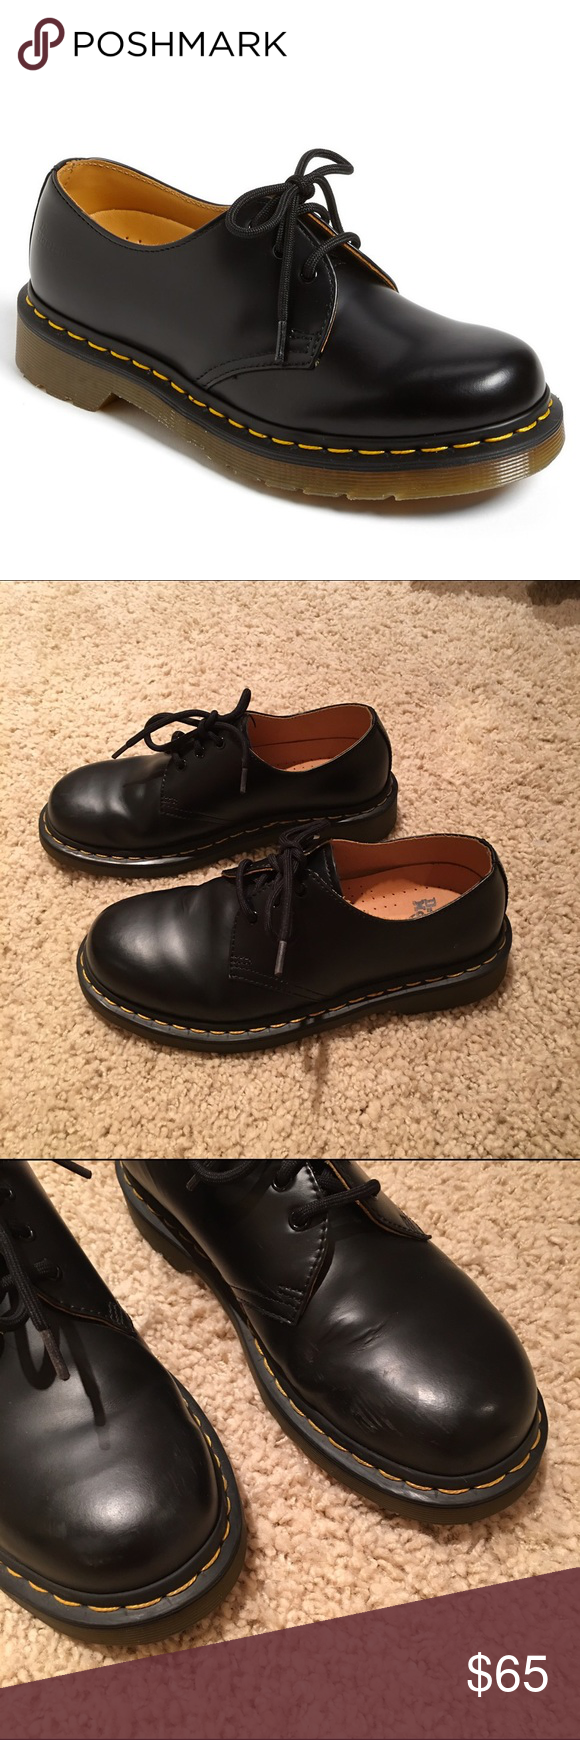 Doc / Dr. Martens Black Oxfords size 6.5 Doc / Dr. Martens Black Leather Oxfords in a size 6.5! These are so cute and in amazing condition aside from some scuffing on the toes shown in the third photo. The fourth photo is the actual pair on me. I'm a size 7 and these fit just fine. Comment any questions!  Dr. Martens Shoes